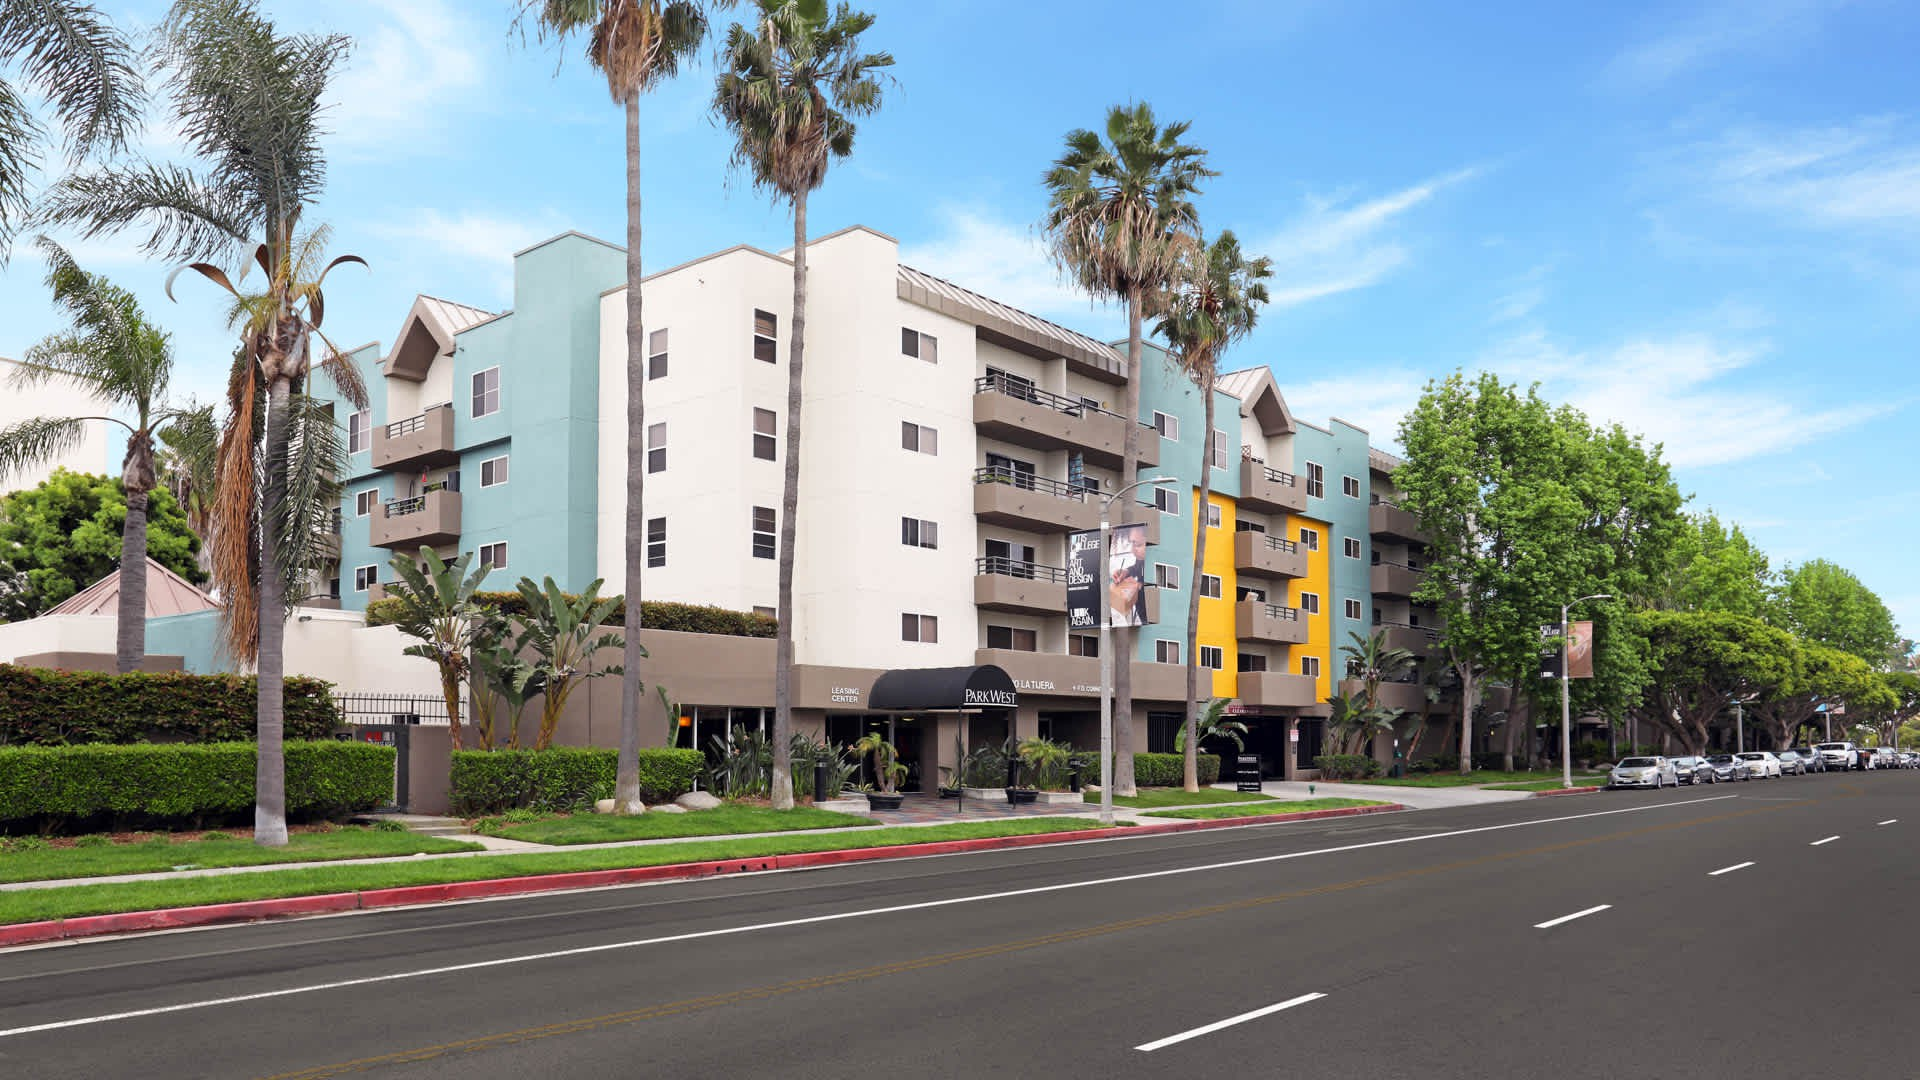 Park West Apartments For Rent   9400 La Tijera Blvd, Los Angeles, CA 90045  With 6 Floorplans   Zumper